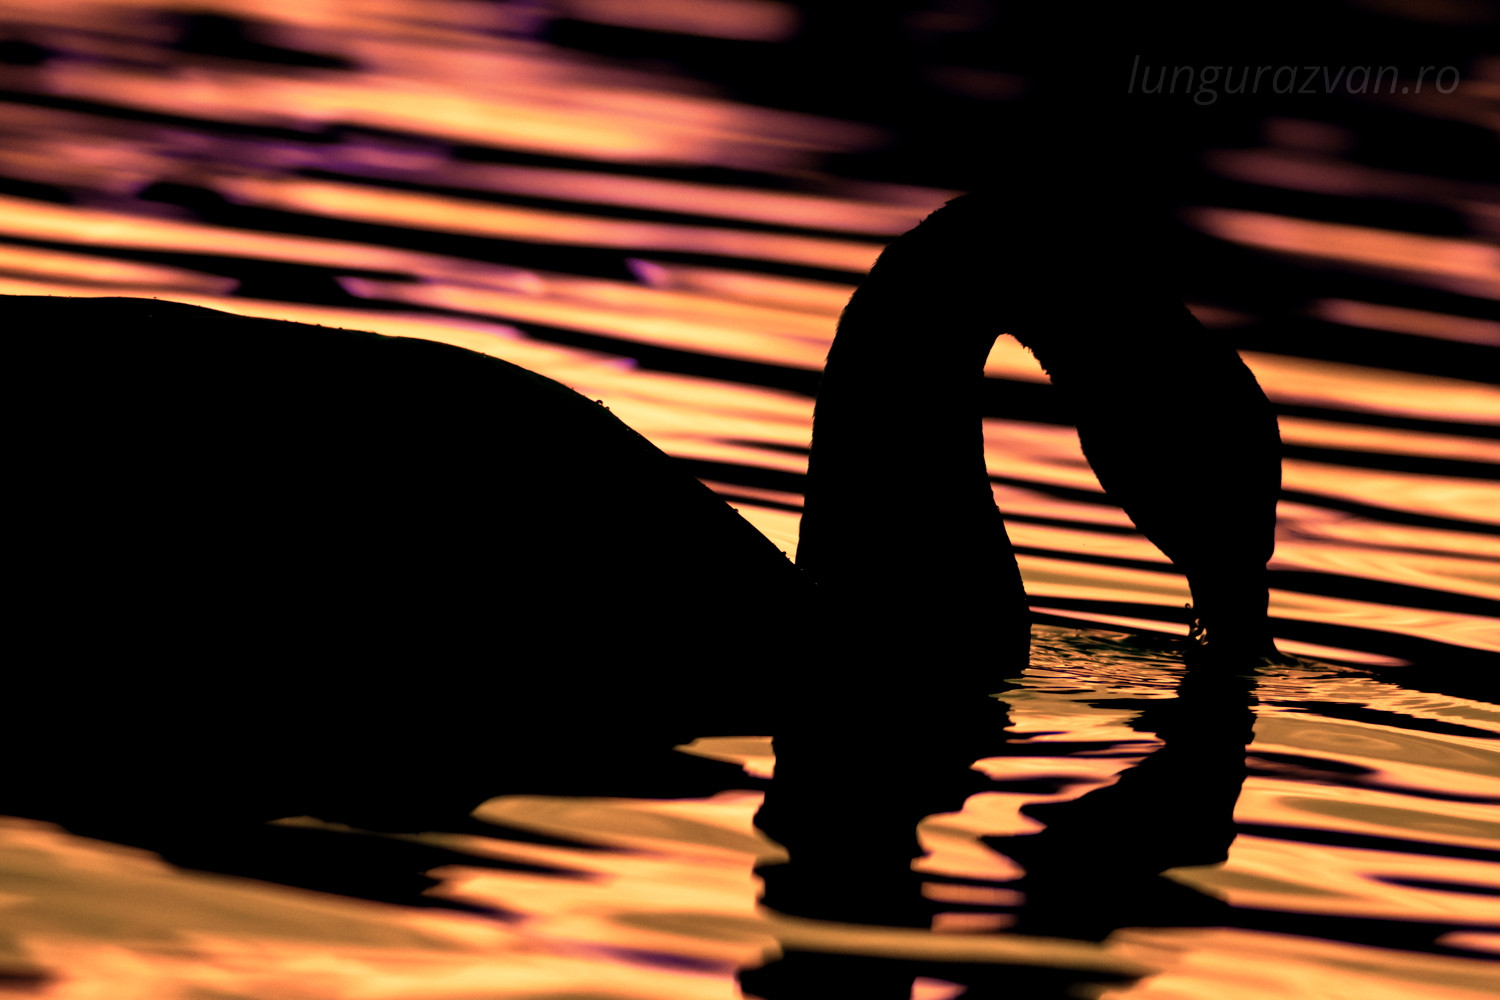 Swimming in Gold. Dark swan silhouette swimming in gold reflecting water.